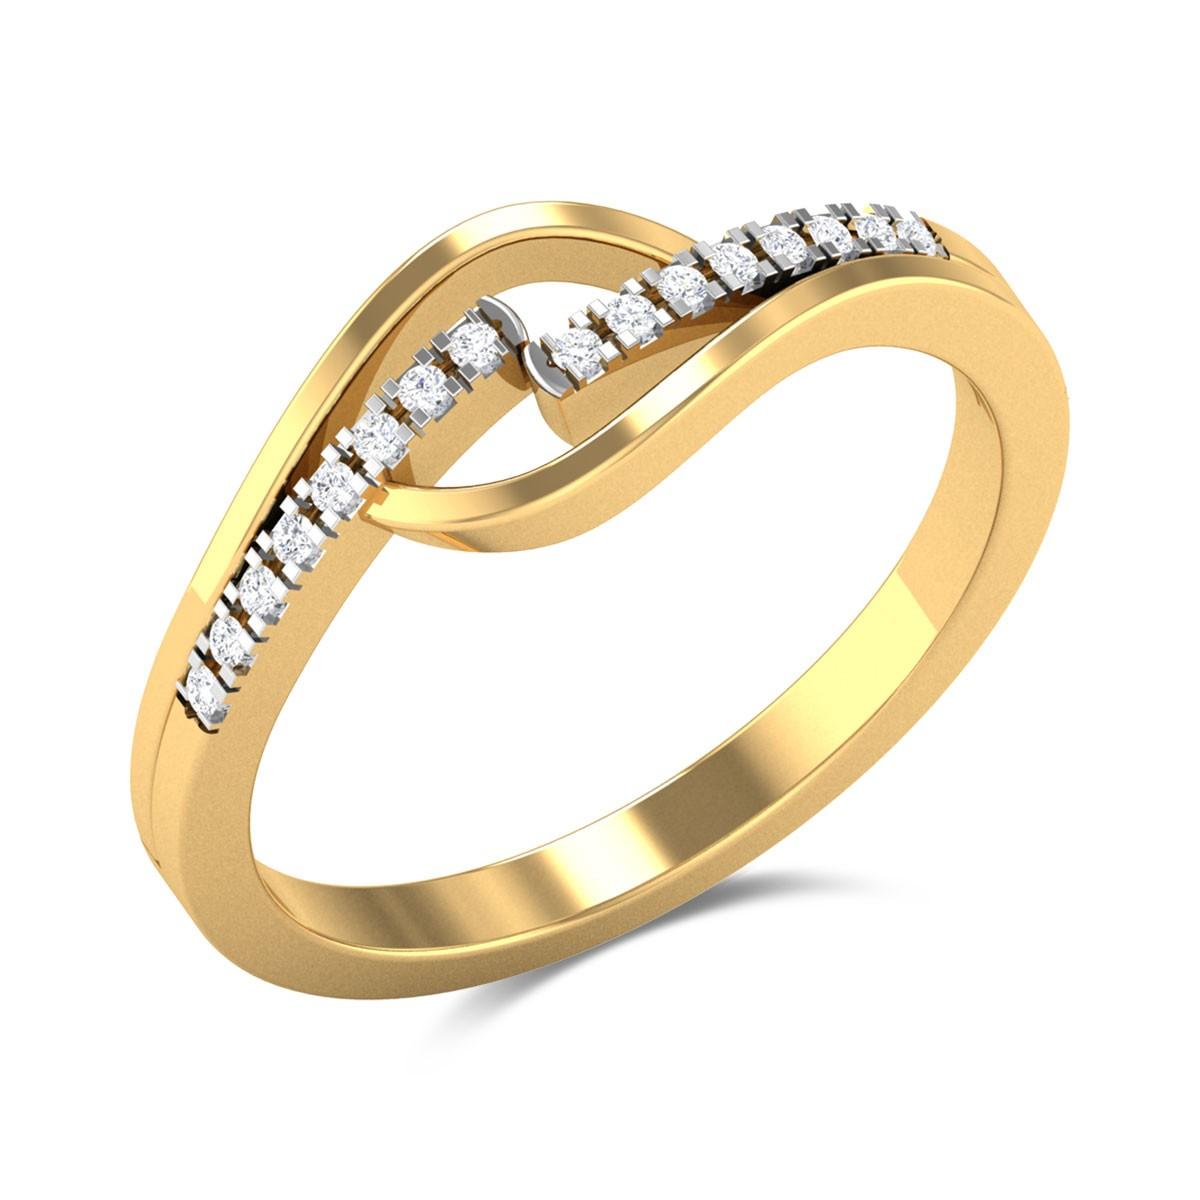 Voguep Diamond Ring